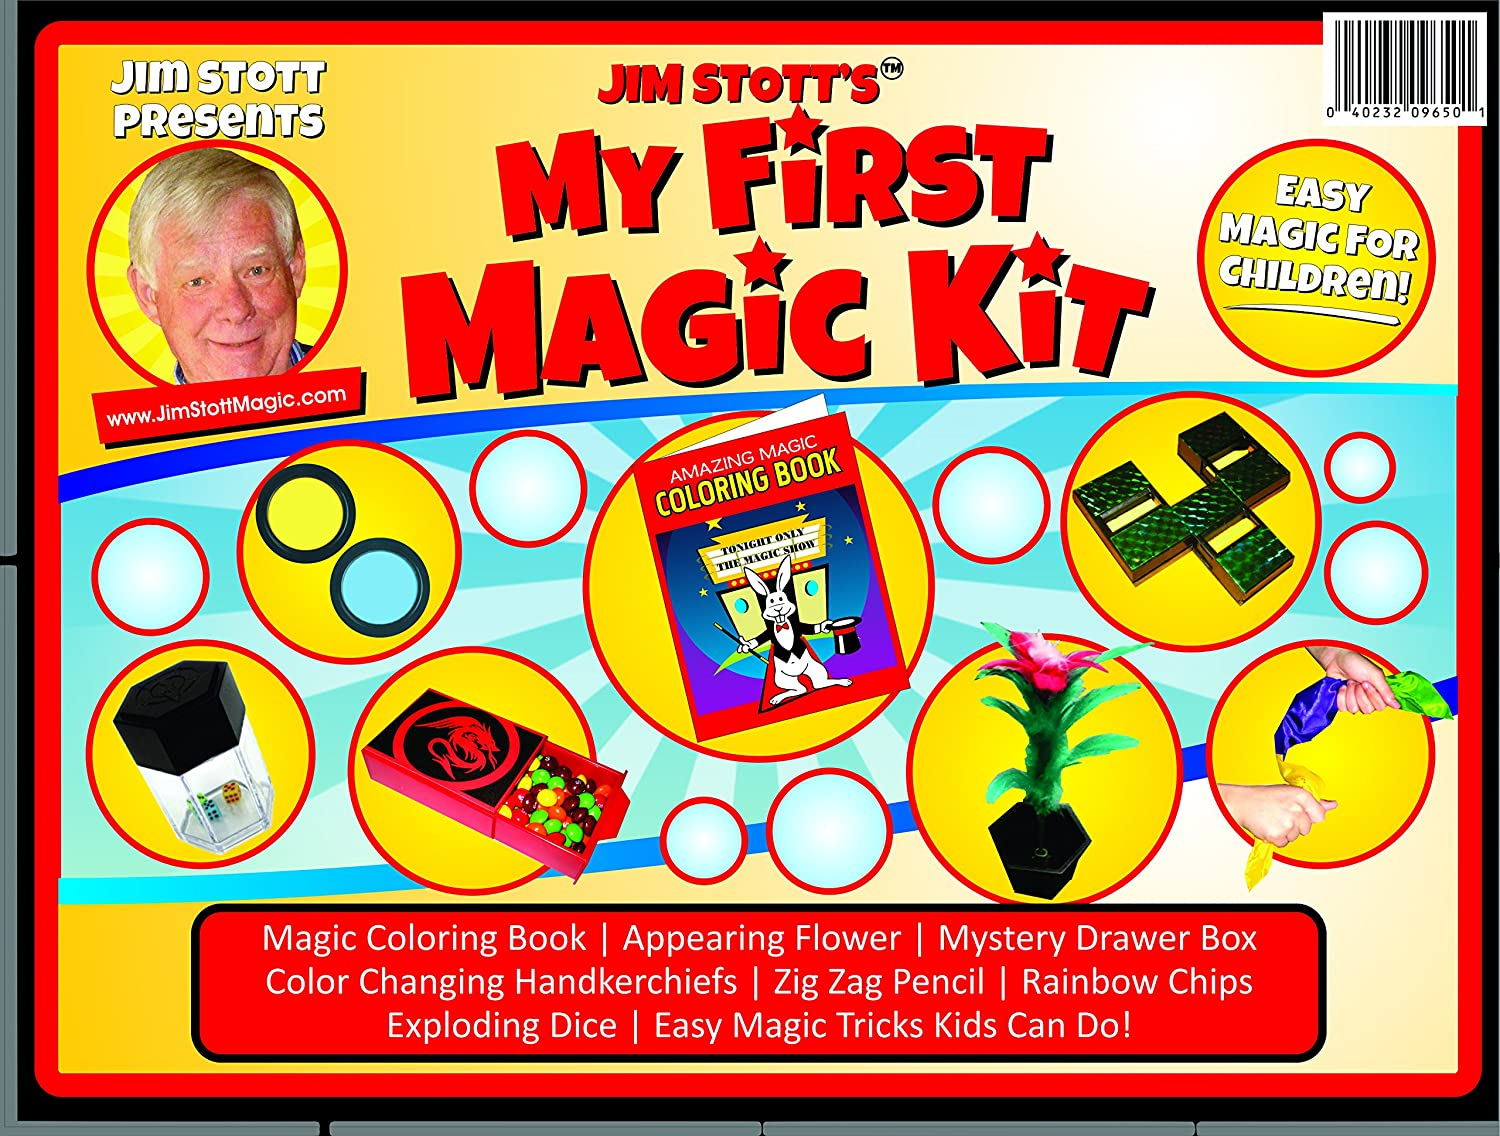 Top 10 Best Magic Kit for Kids (2020 Reviews & Buying Guide) 1